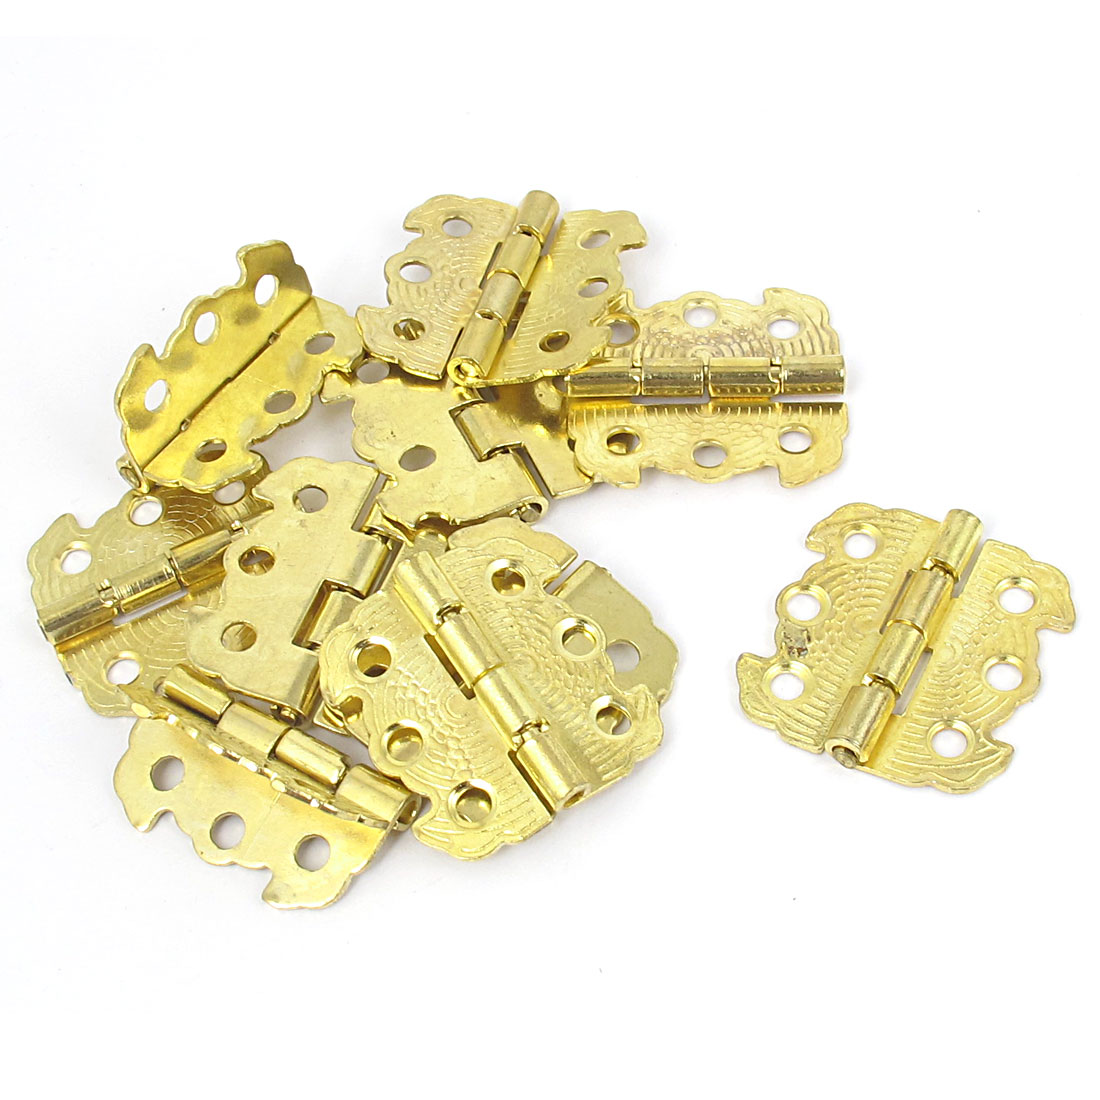 Cabinet Gate Closet Door Butterfly Shape 90 Degree Metal Butt Hinges Gold Tone 10pcs